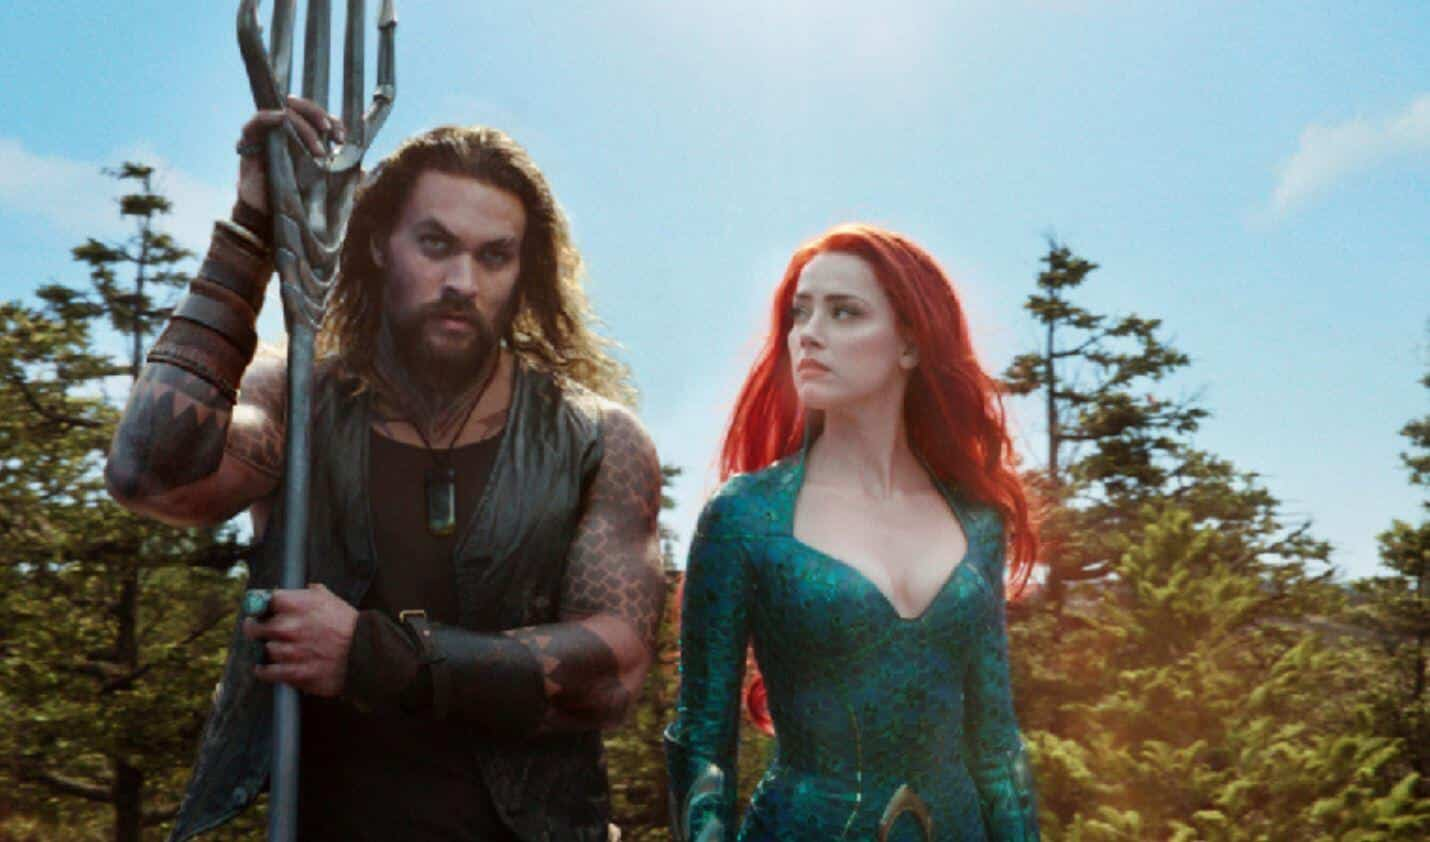 Petition To Remove Amber Heard From 'Aquaman 2' Gains Momentum